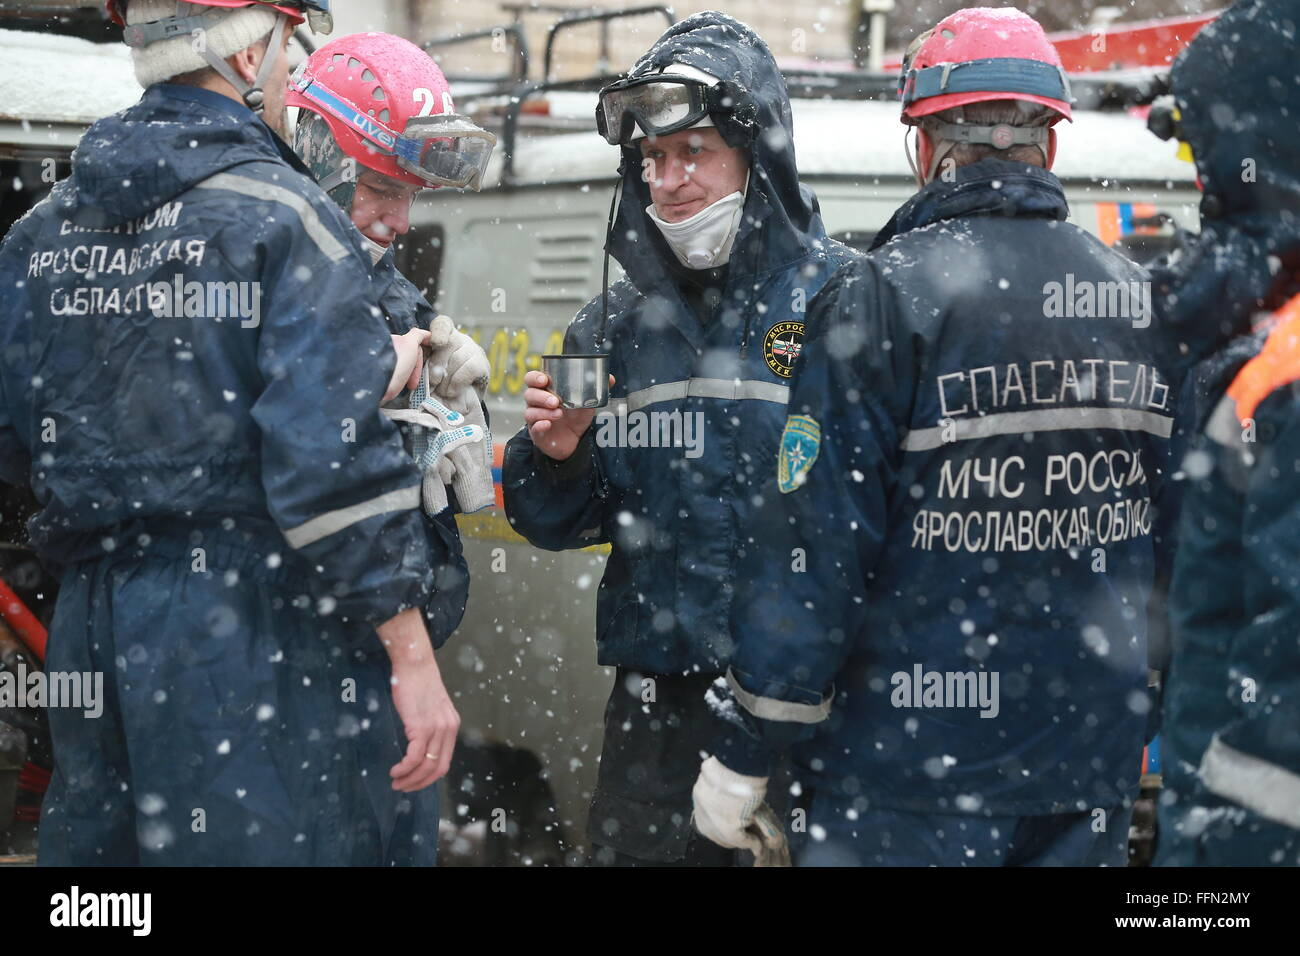 Yaroslavl, Russia. 16th February, 2016. Emergency workers at the site of a blast in a block of flats at Shestaya - Stock Image